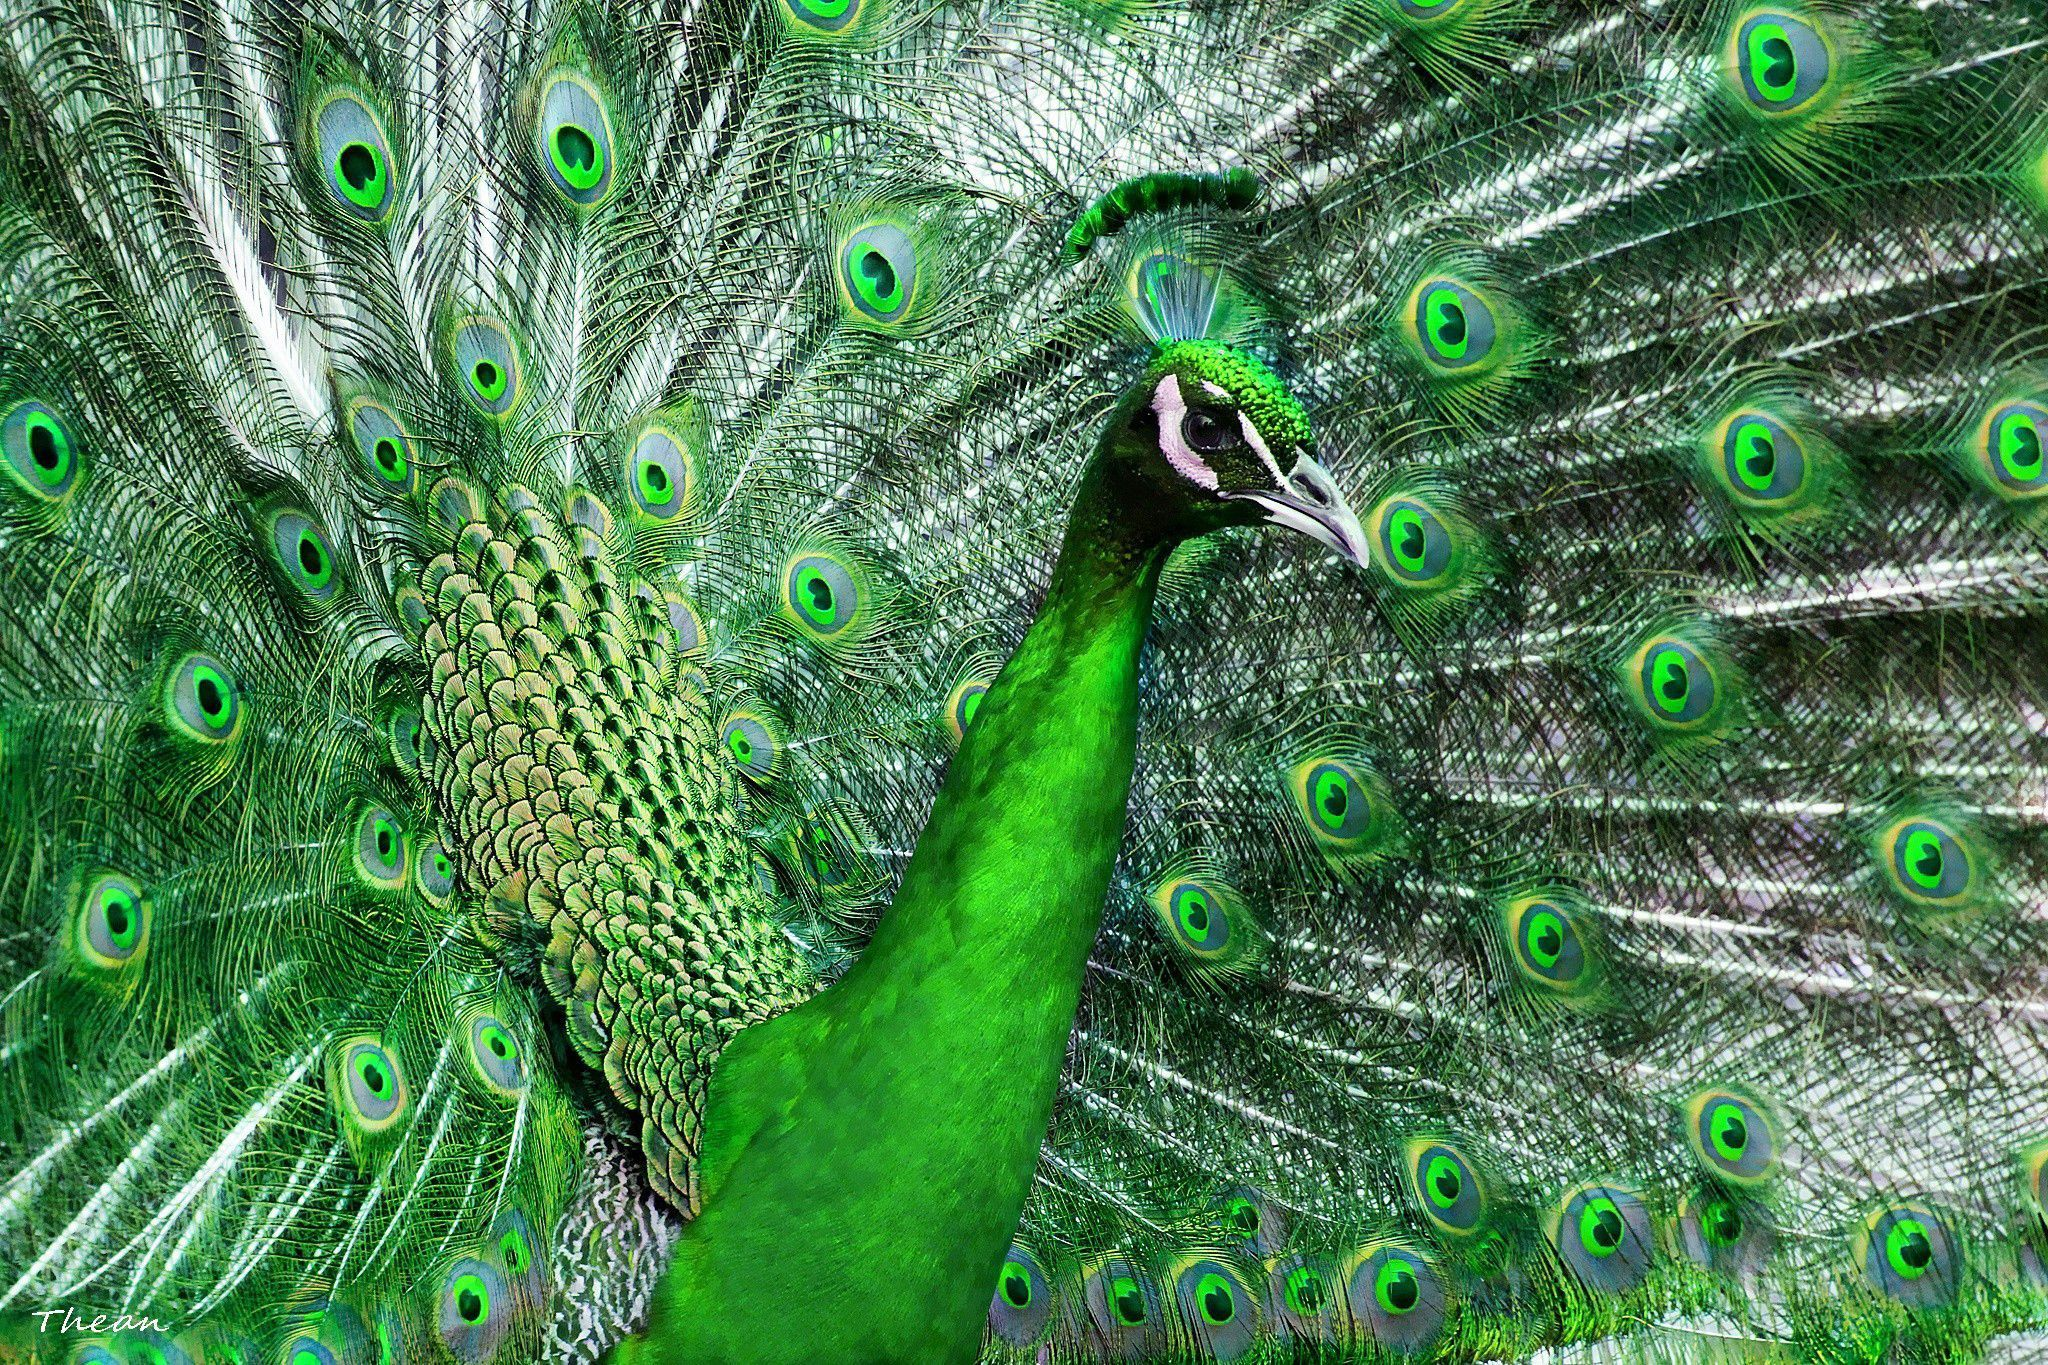 www.peacock images